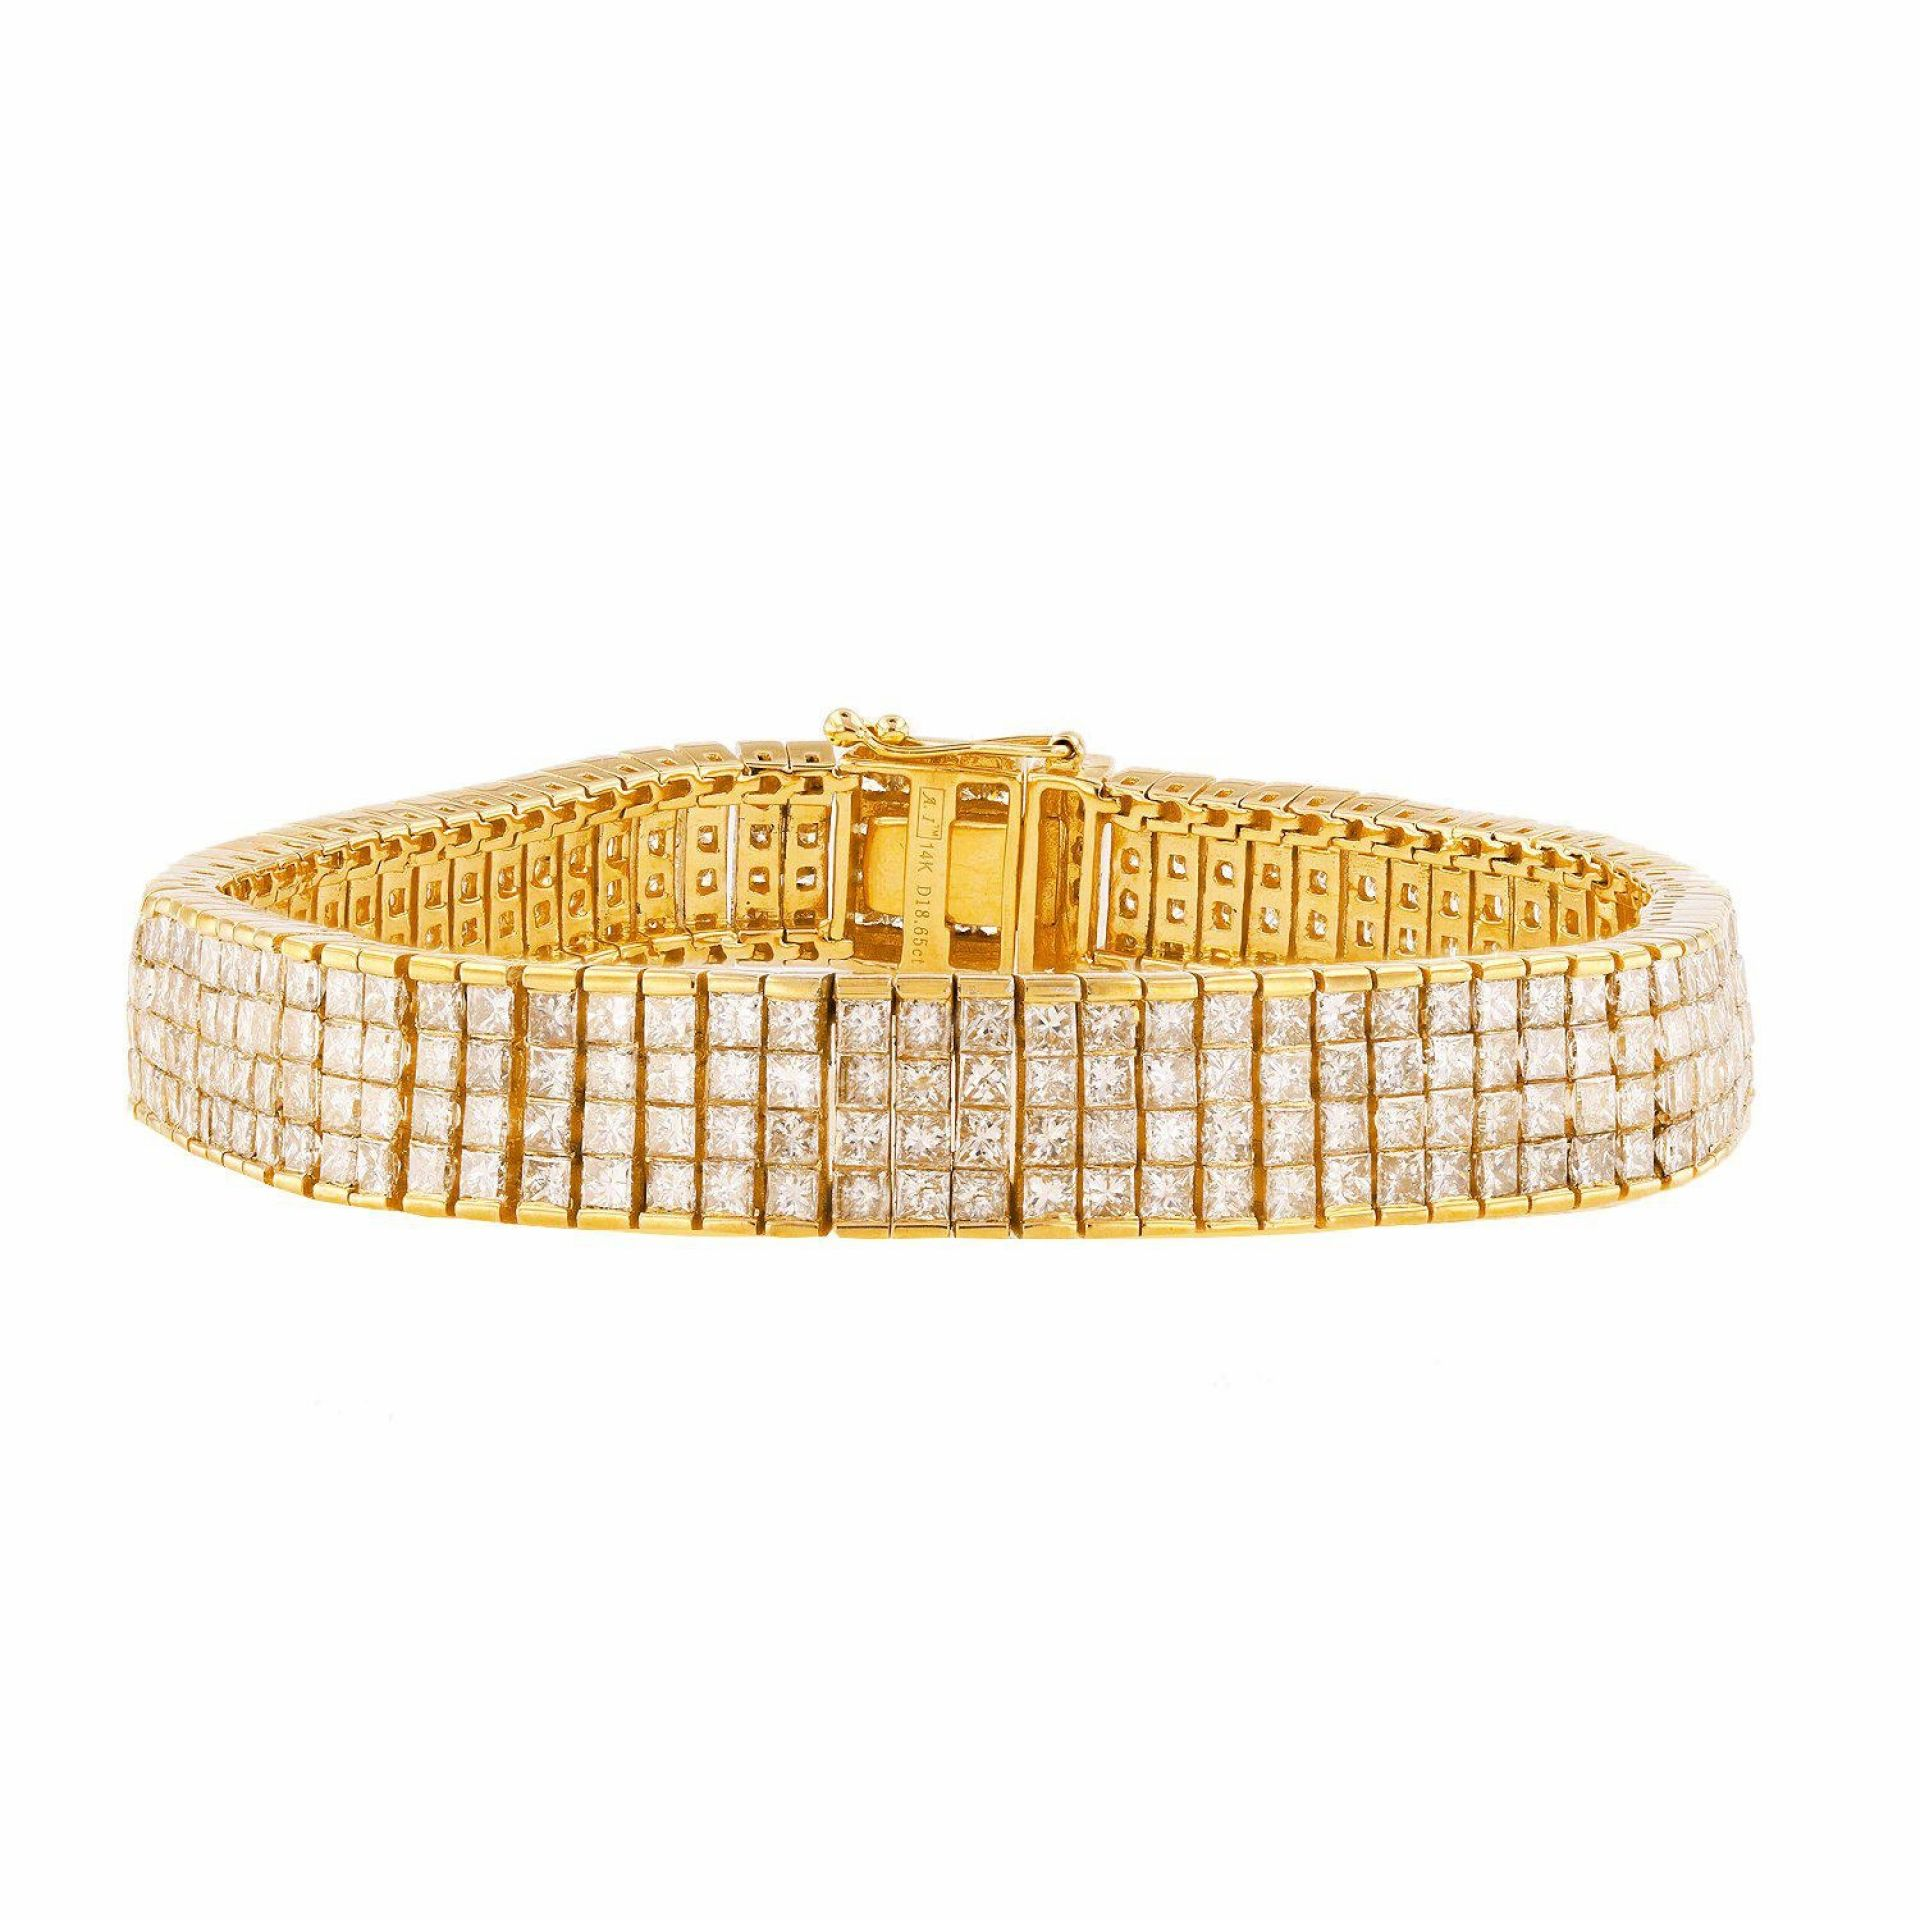 18.65ctw Diamond 14KT Yellow Gold Tennis Bracelet